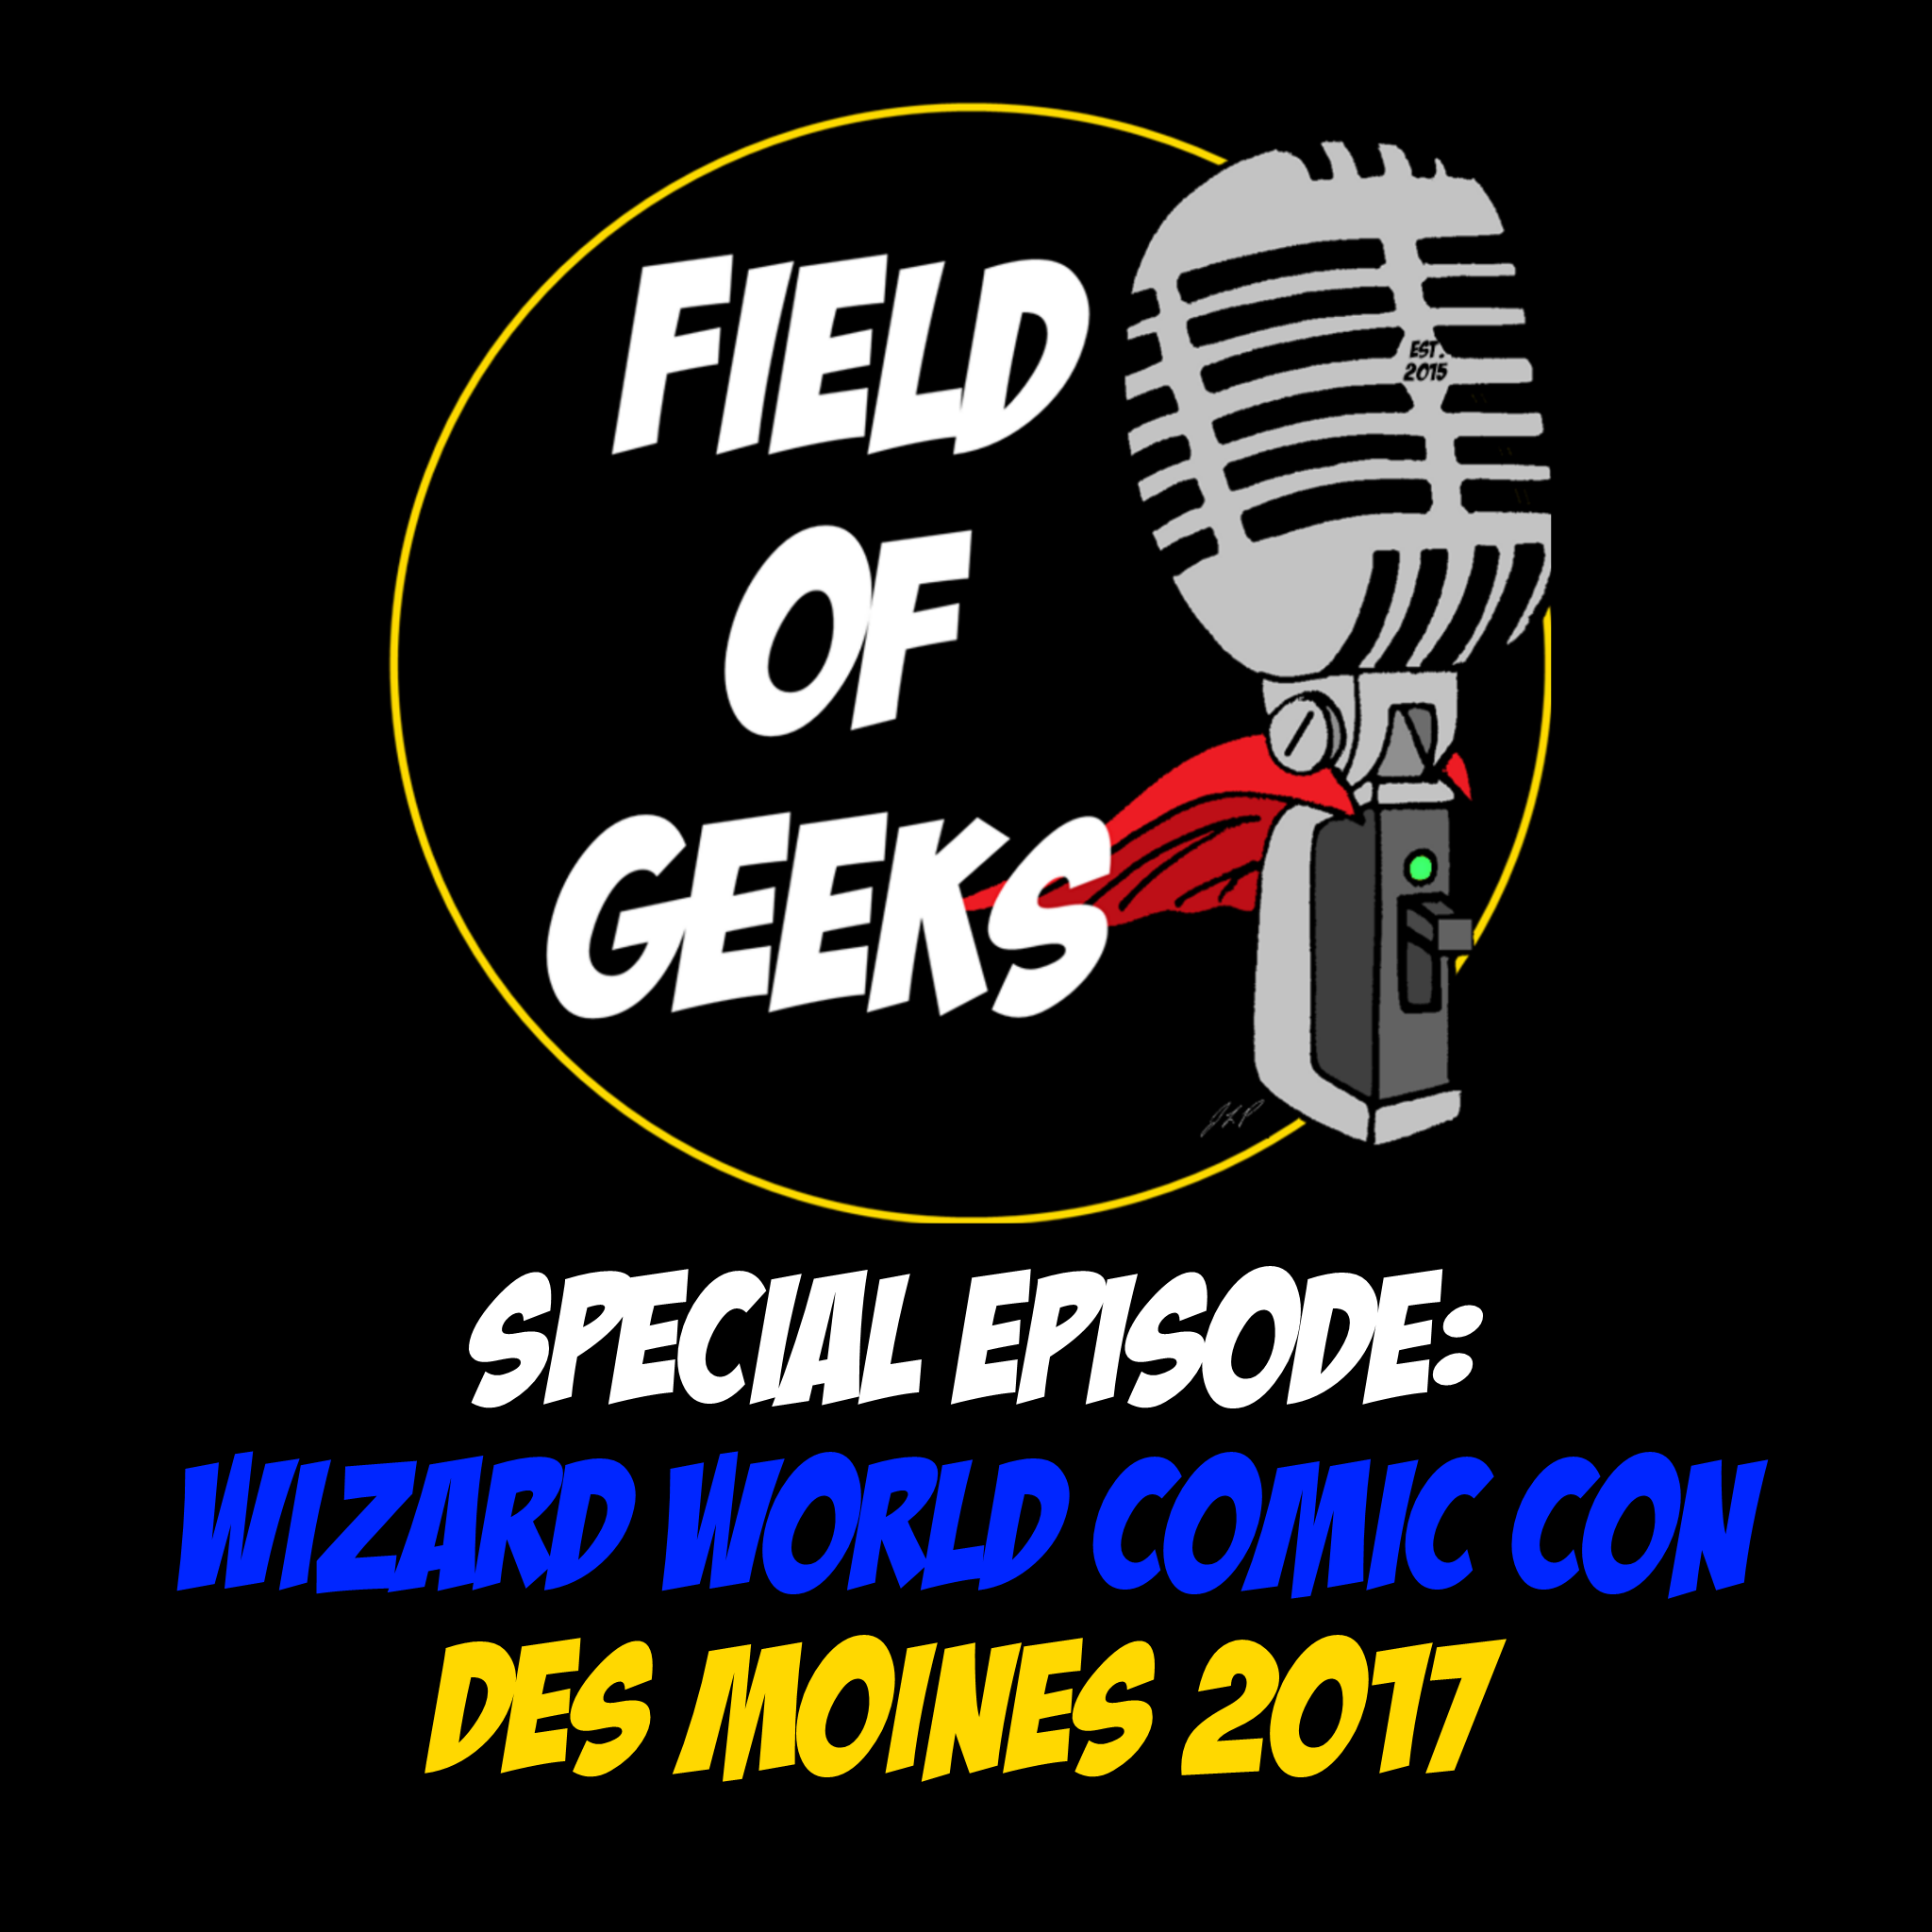 FIELD OF GEEKS SPECIAL EPISODE:  WIZARD WORLD COMIC CON DES MOINES 2017